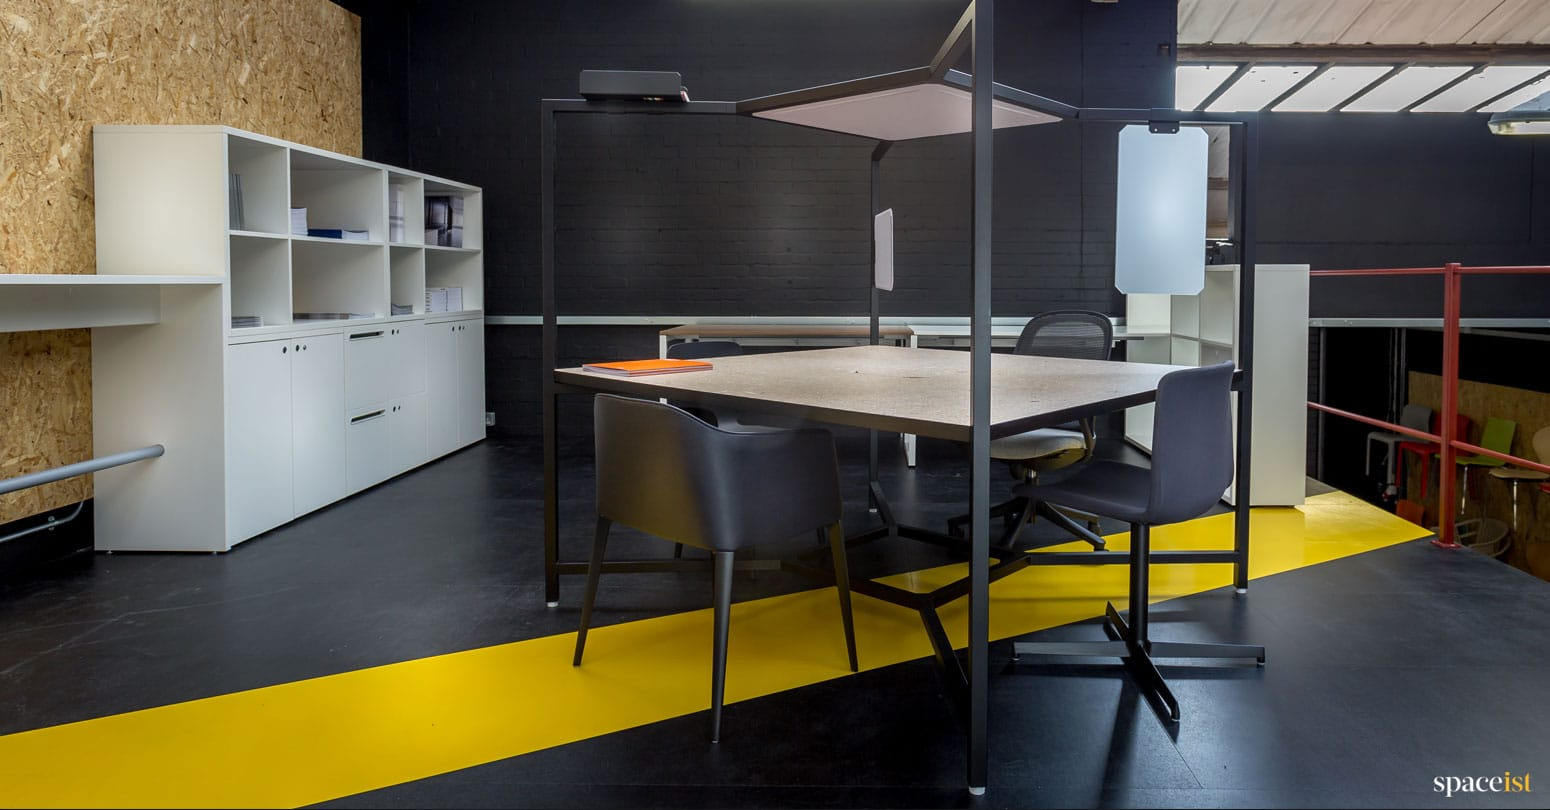 Spaceist furniture showroom black Hub desk